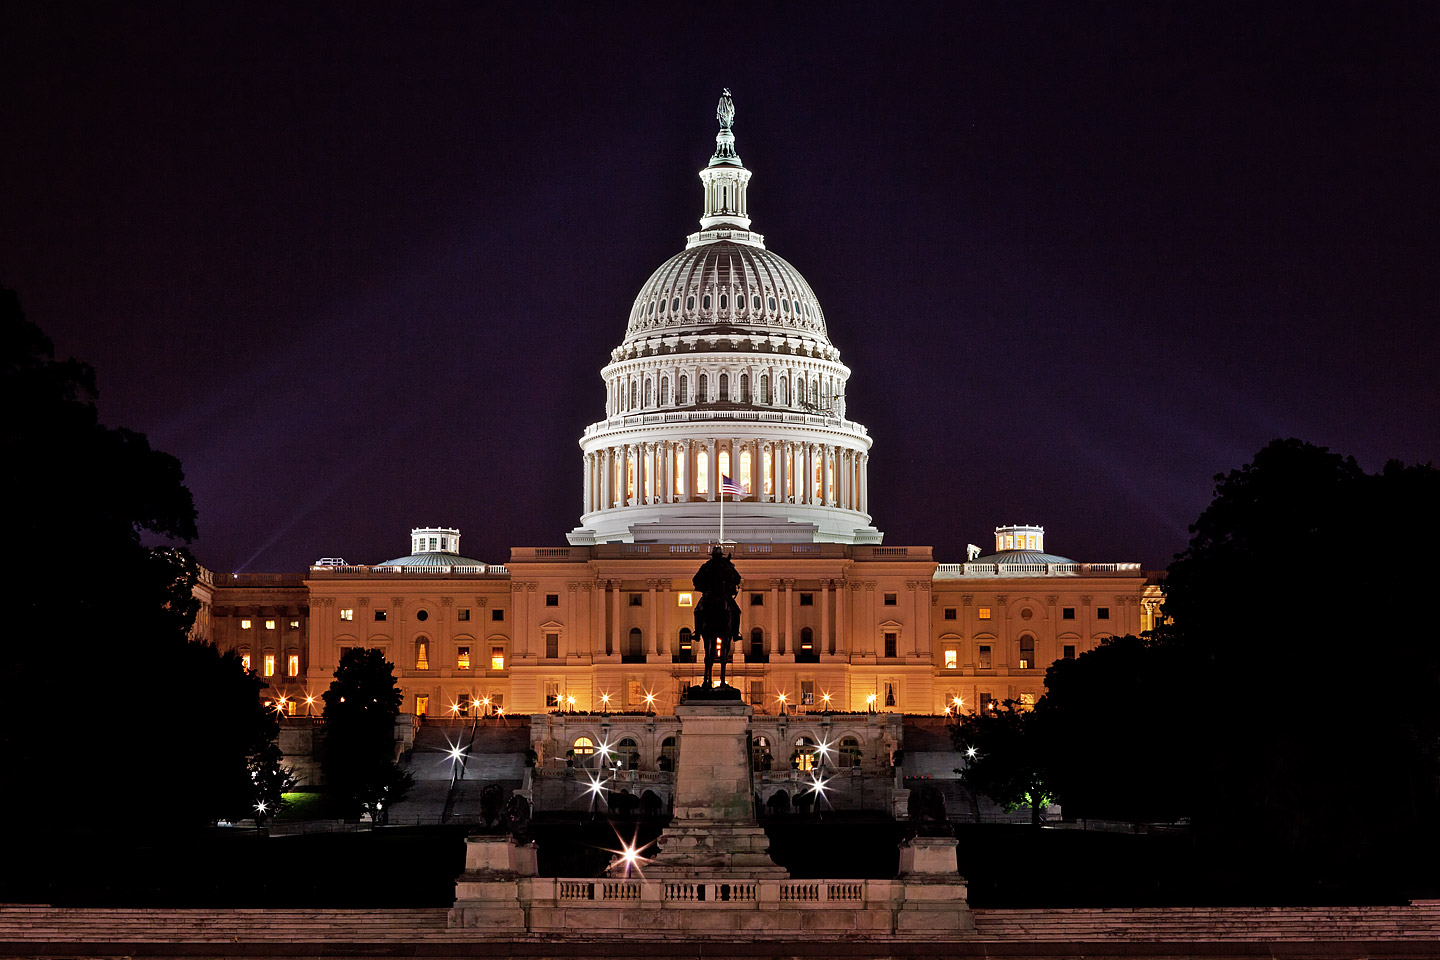 illuminated united states capitol building photographed at night by architectural photographer Jacob Rosenfeld